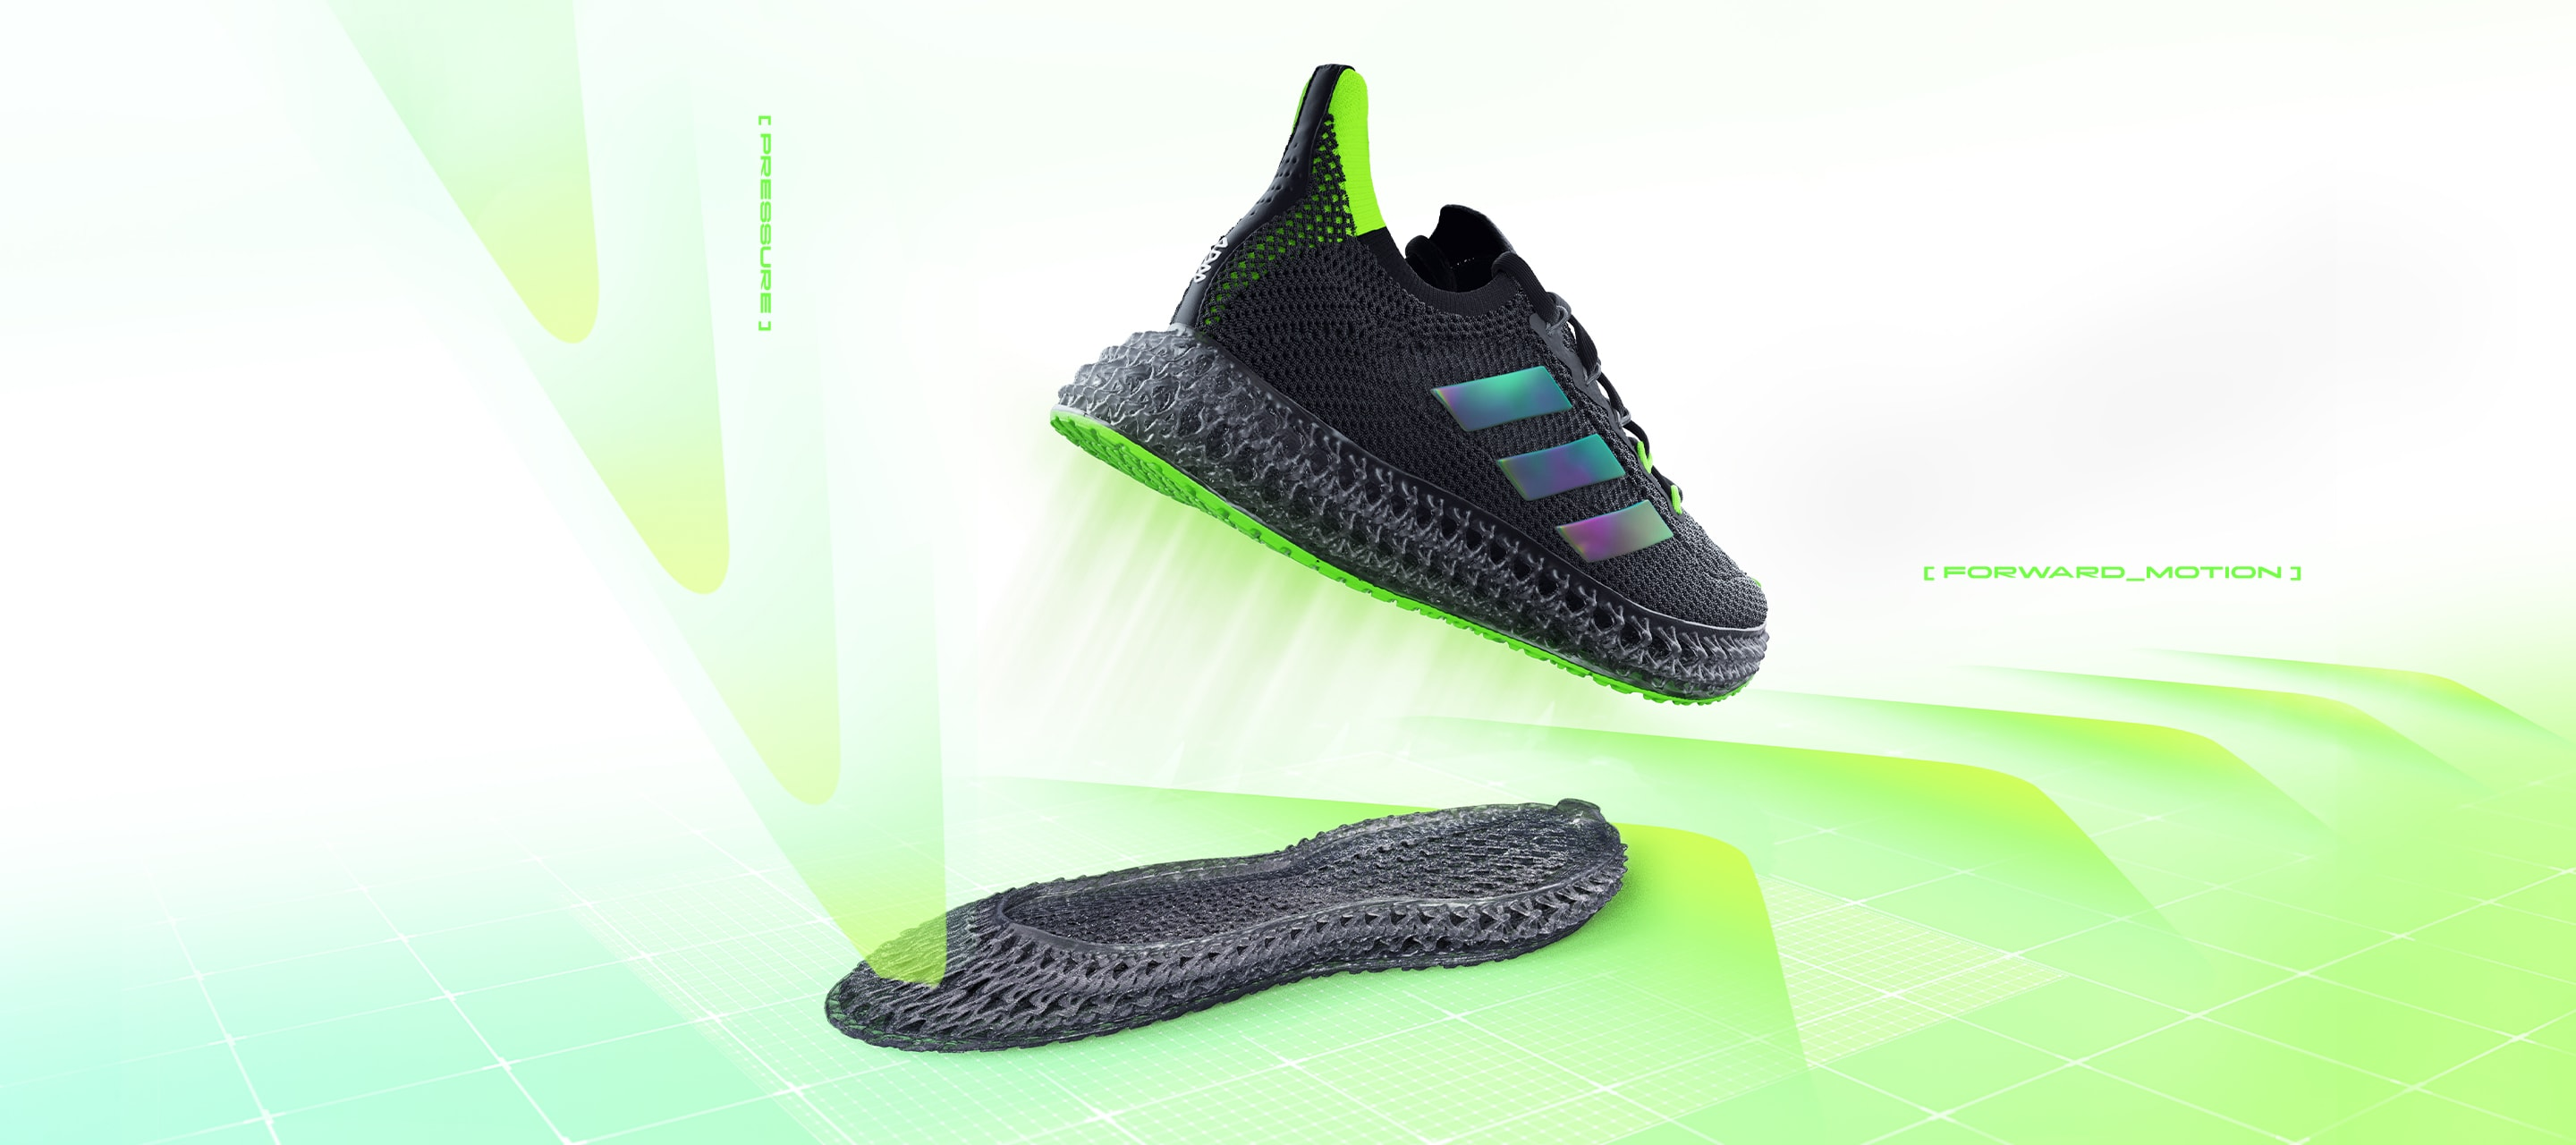 Video explaining the design and technology behind the new adidas 4DFWD running shoe.